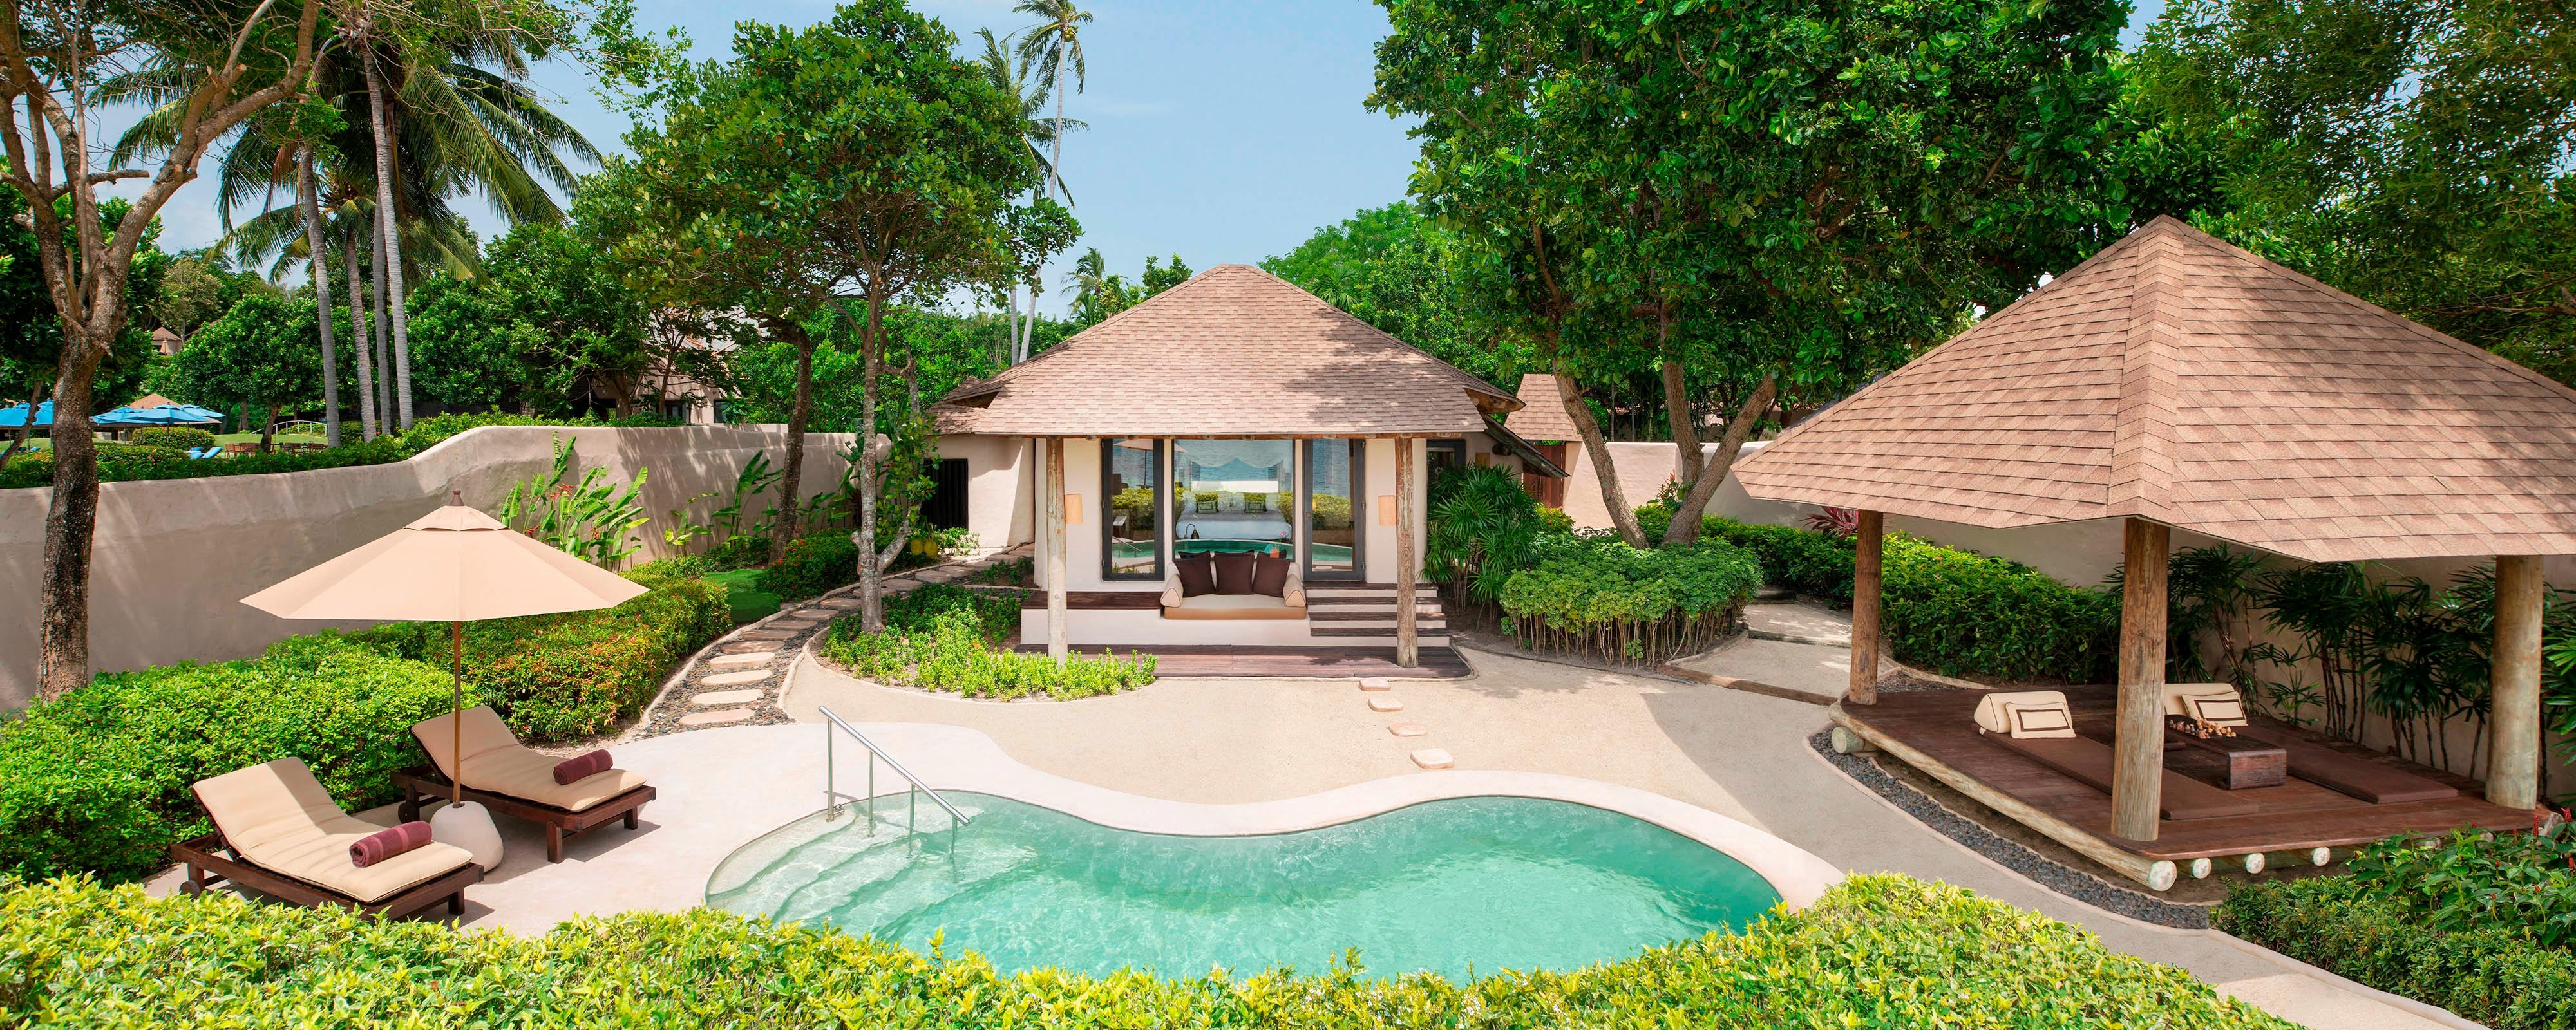 Naka island tropical pool villa